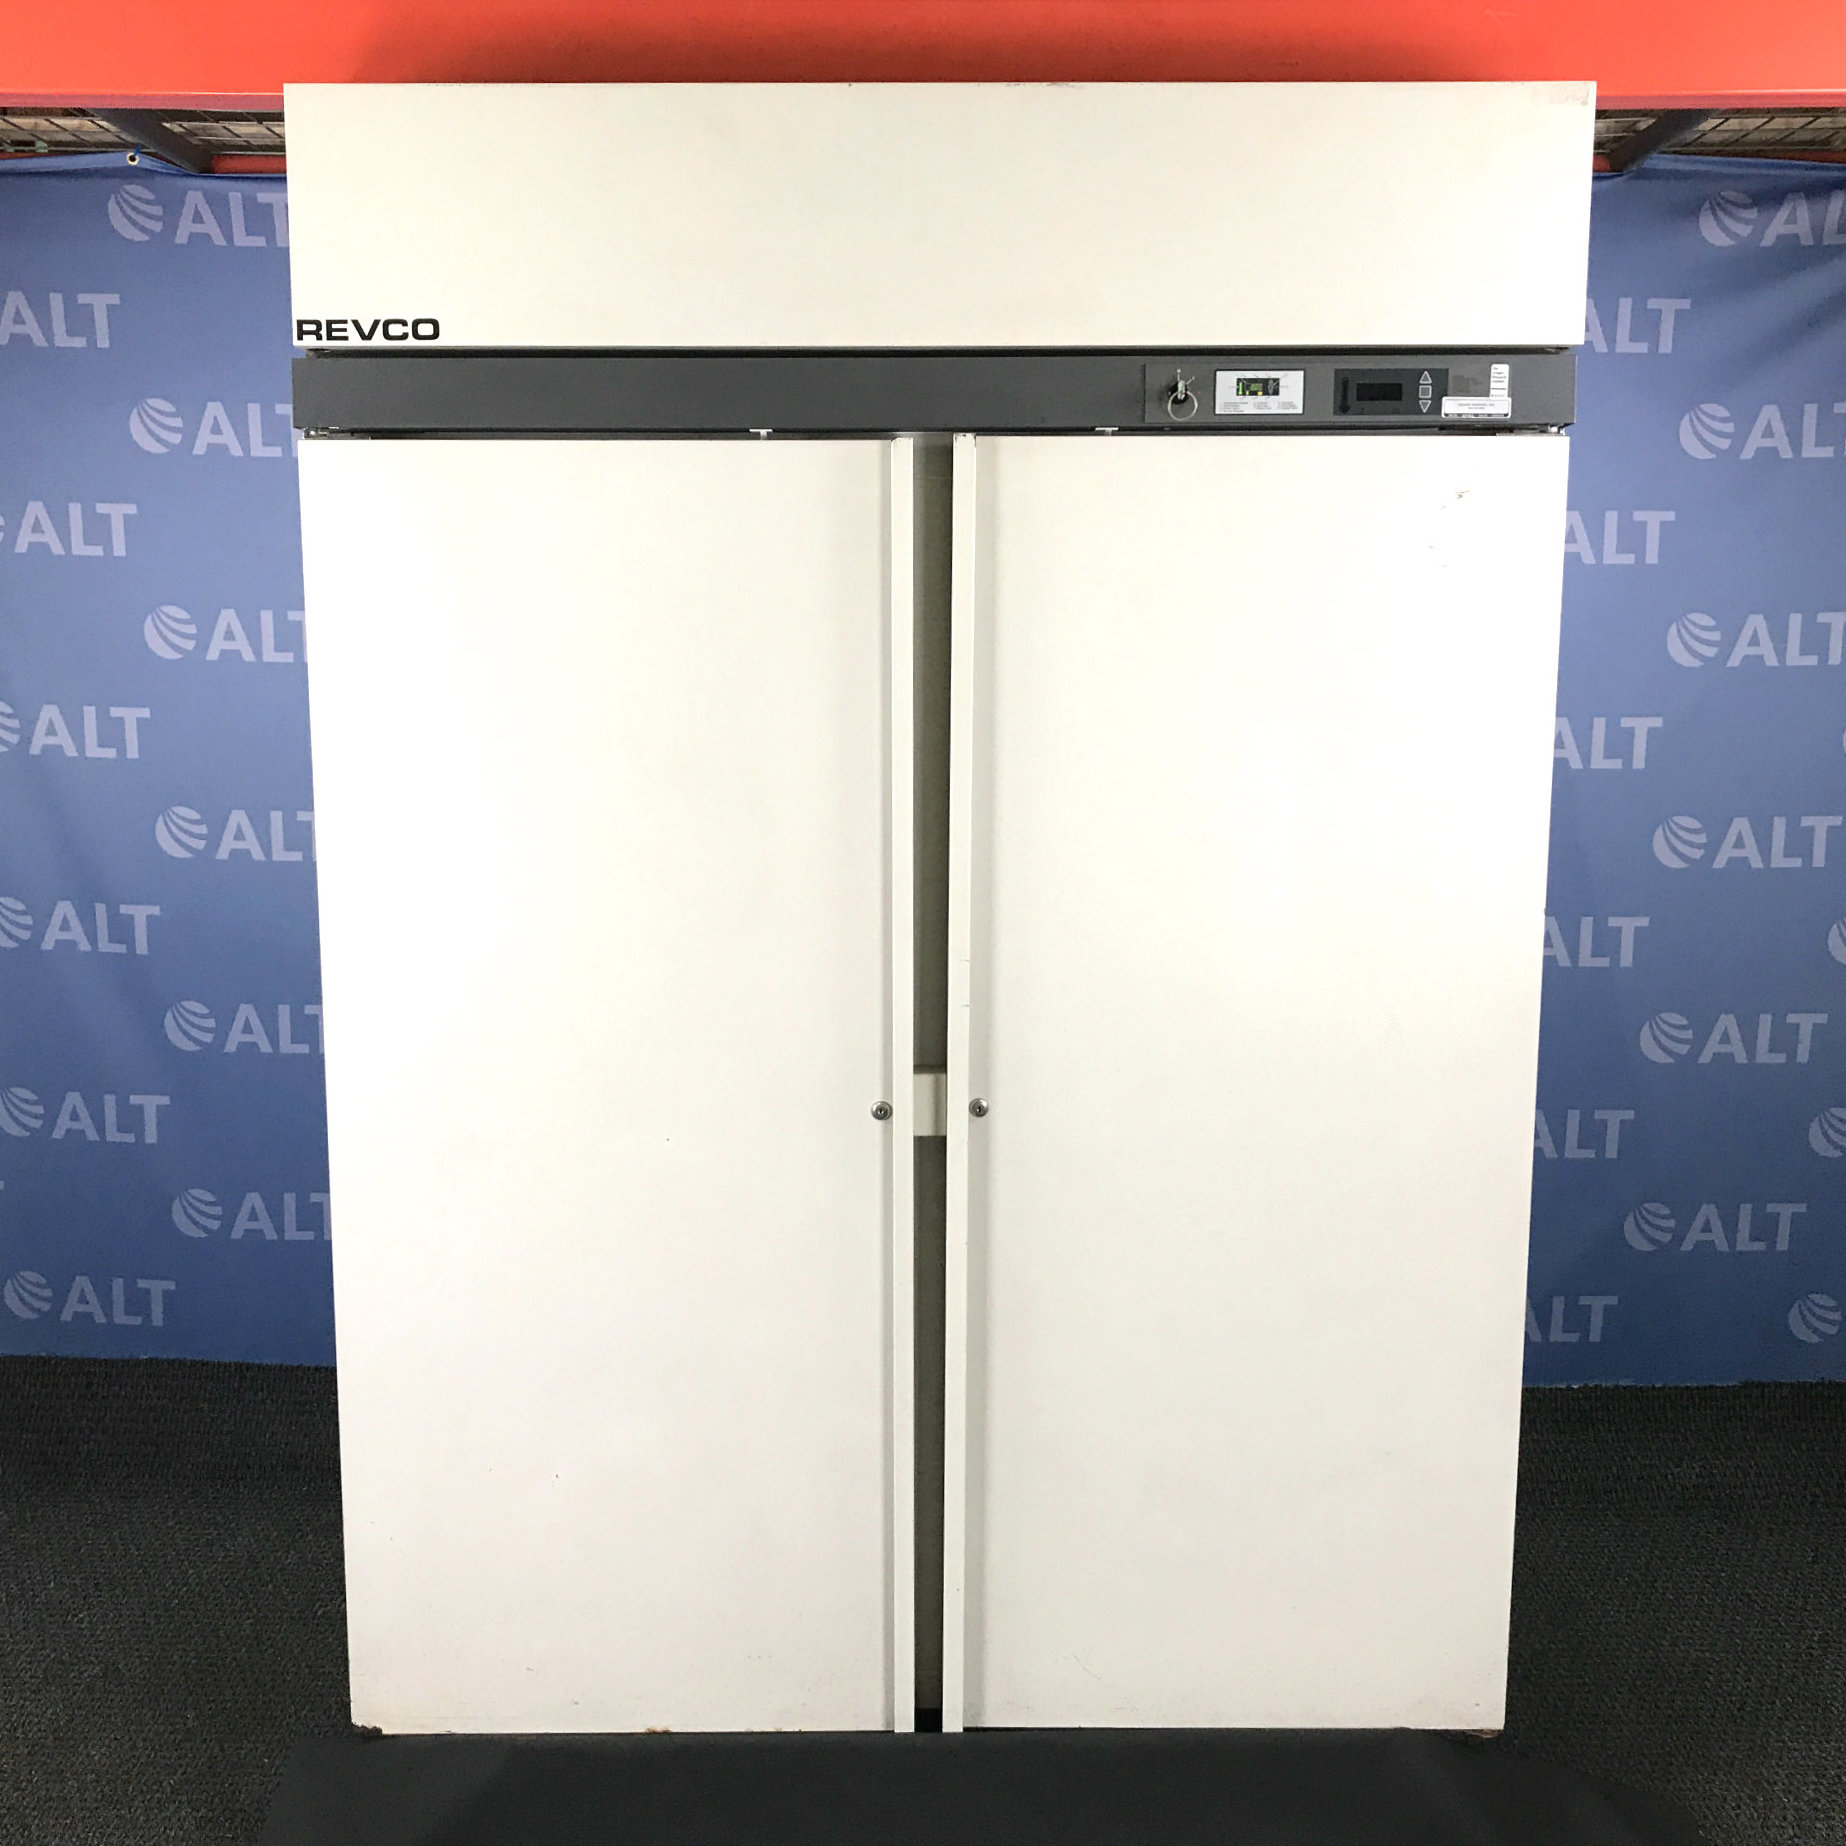 Revco ULT5030A18 Ultralow Temp Dual-Sided Lab Freezer Image